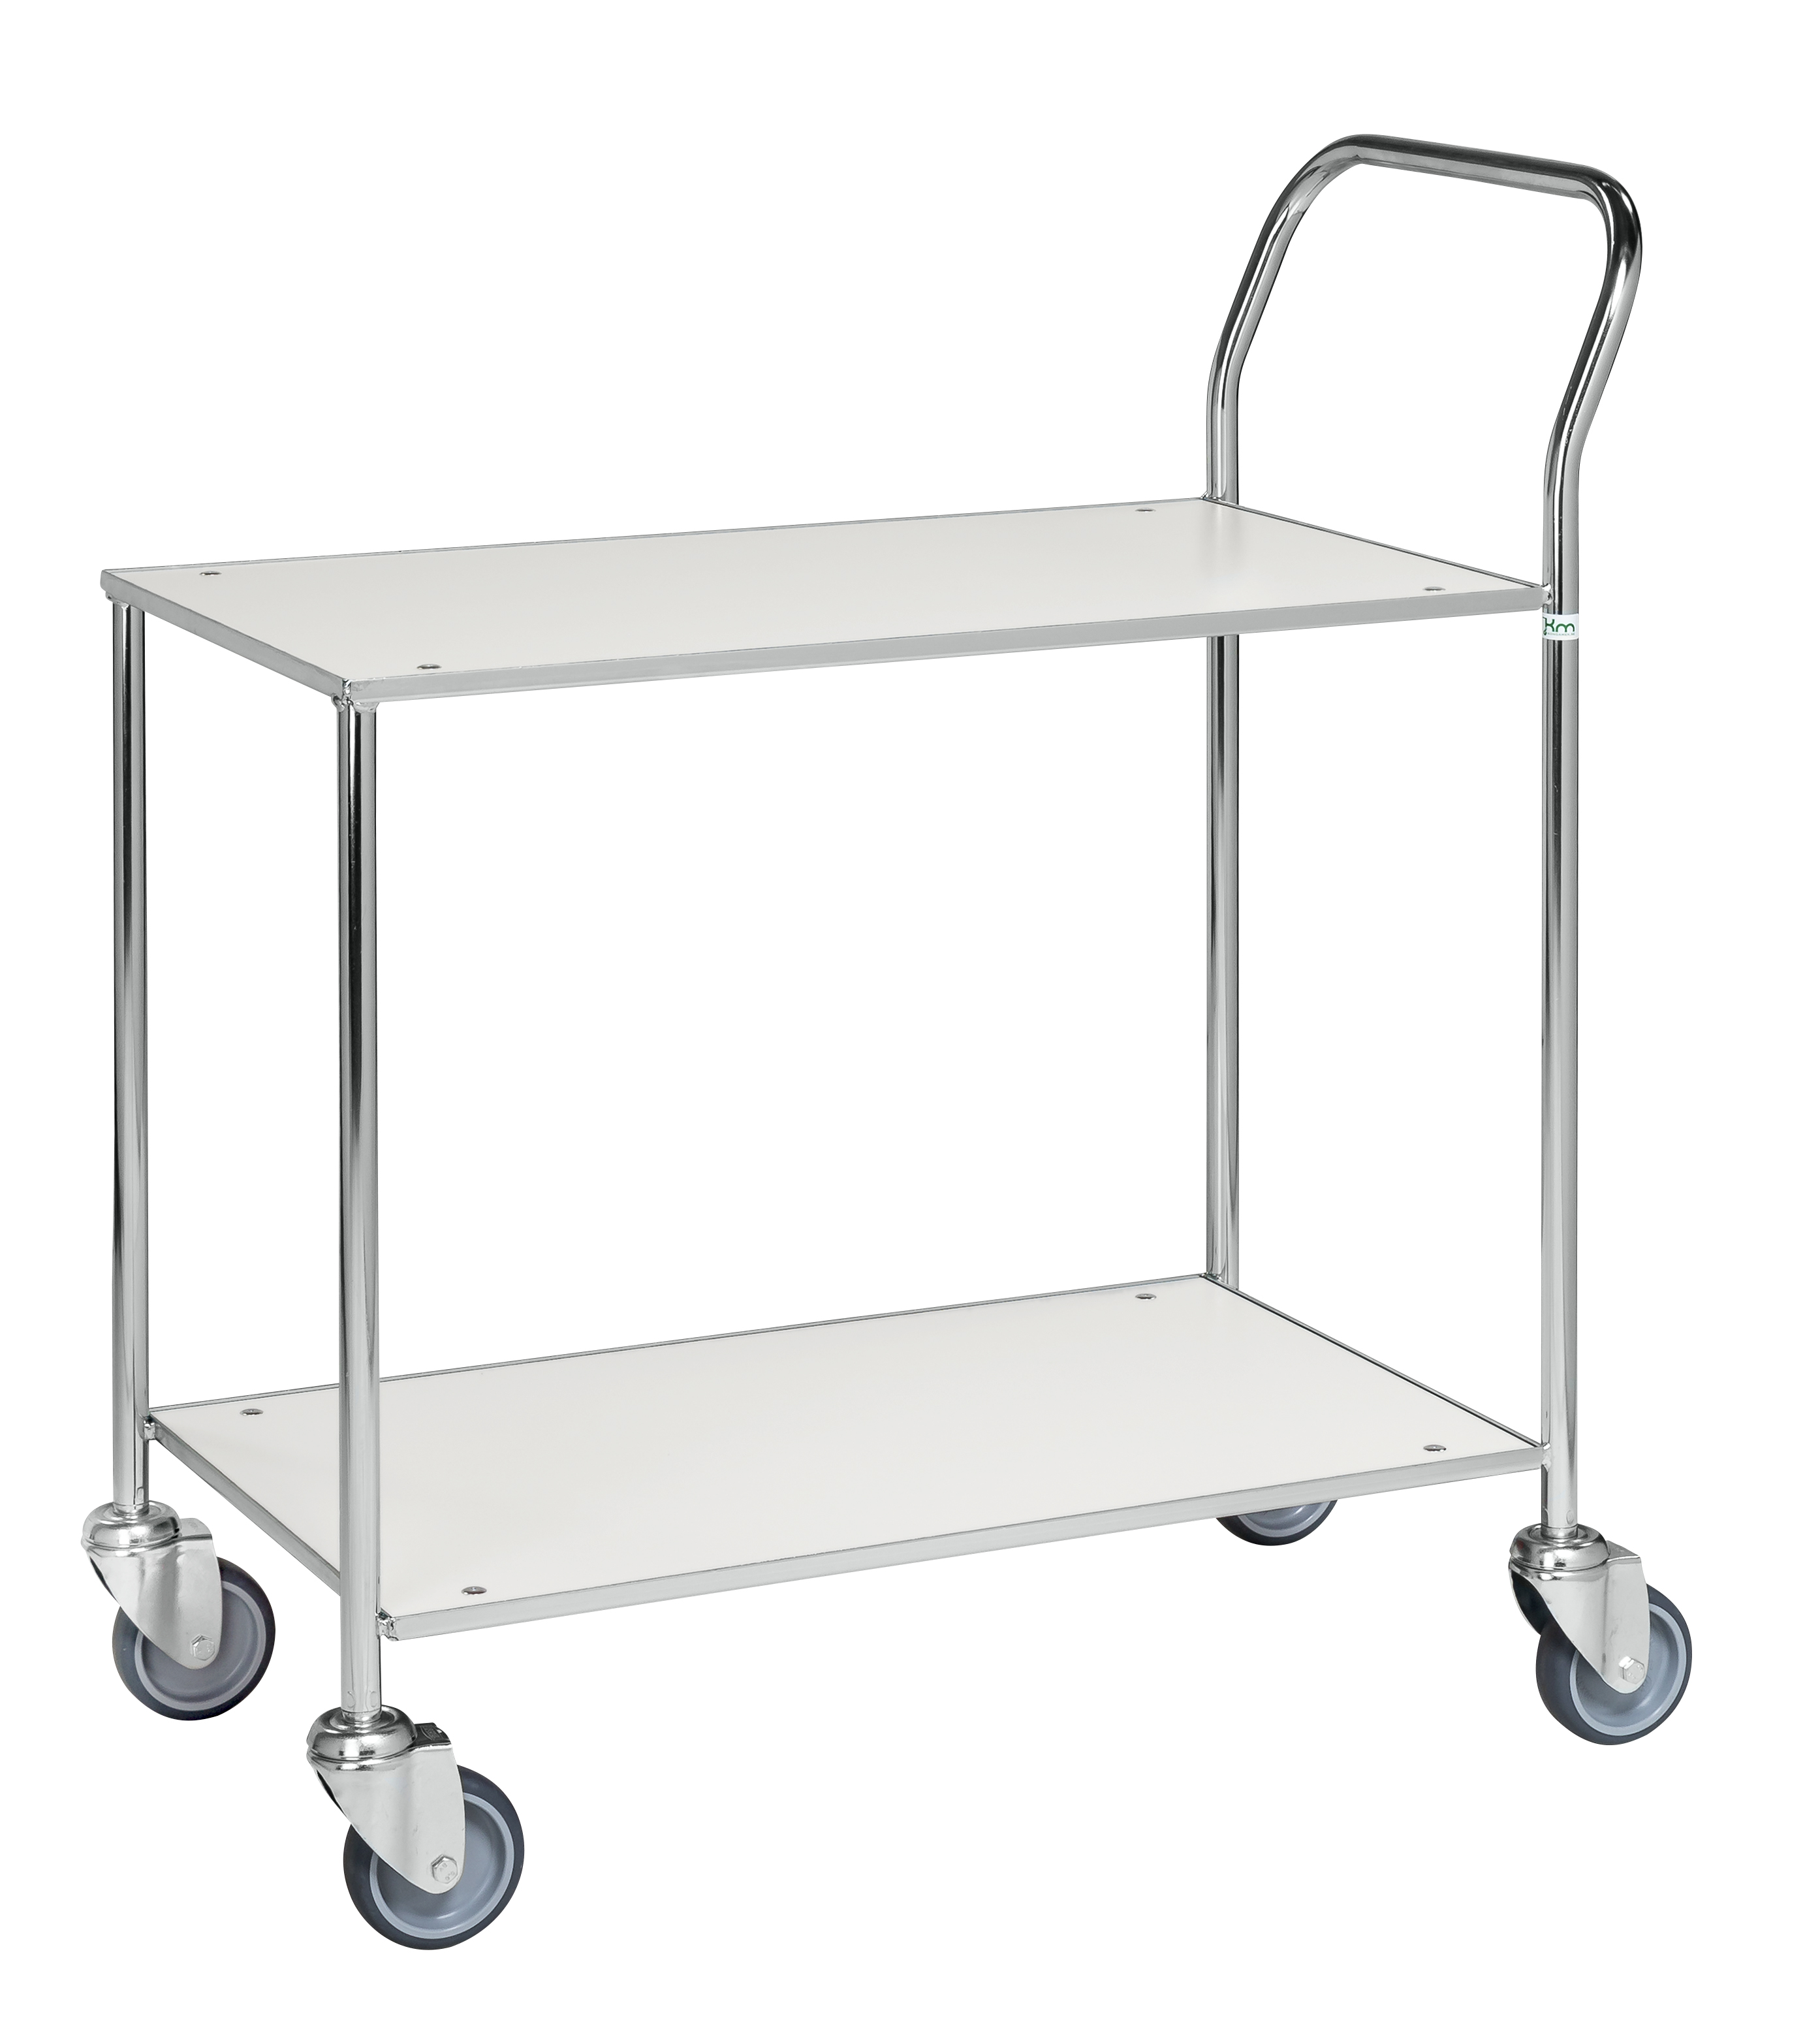 Small table trolley, fully welded KM172-6